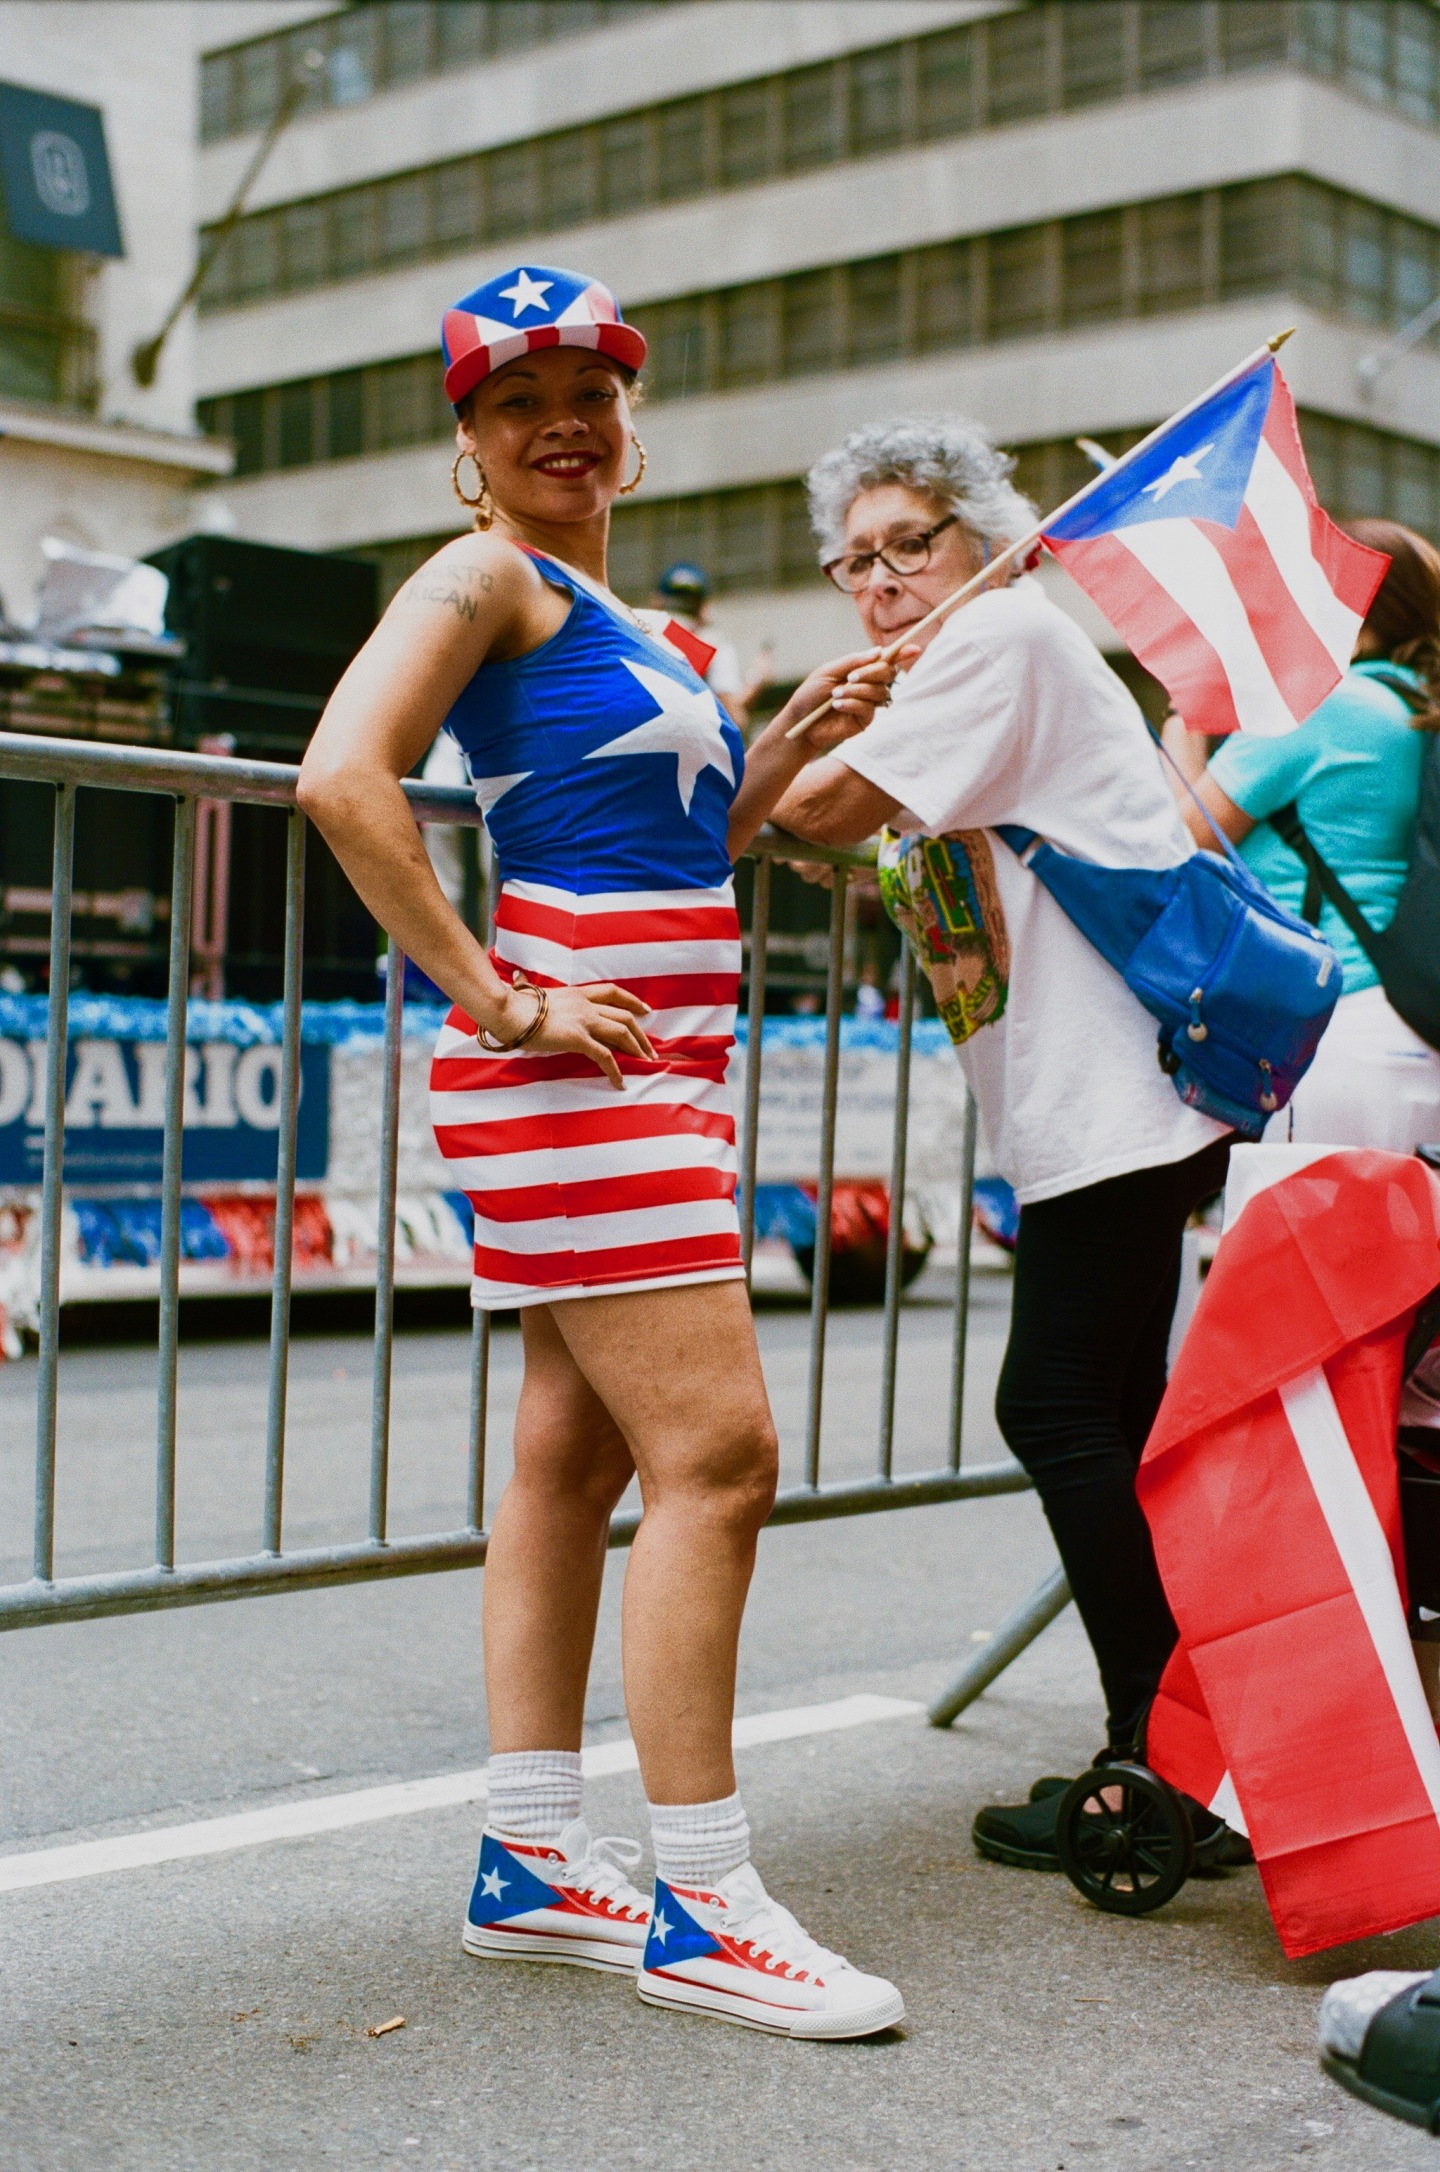 Every Outfit At The Puerto Rican Day Parade Was A Love